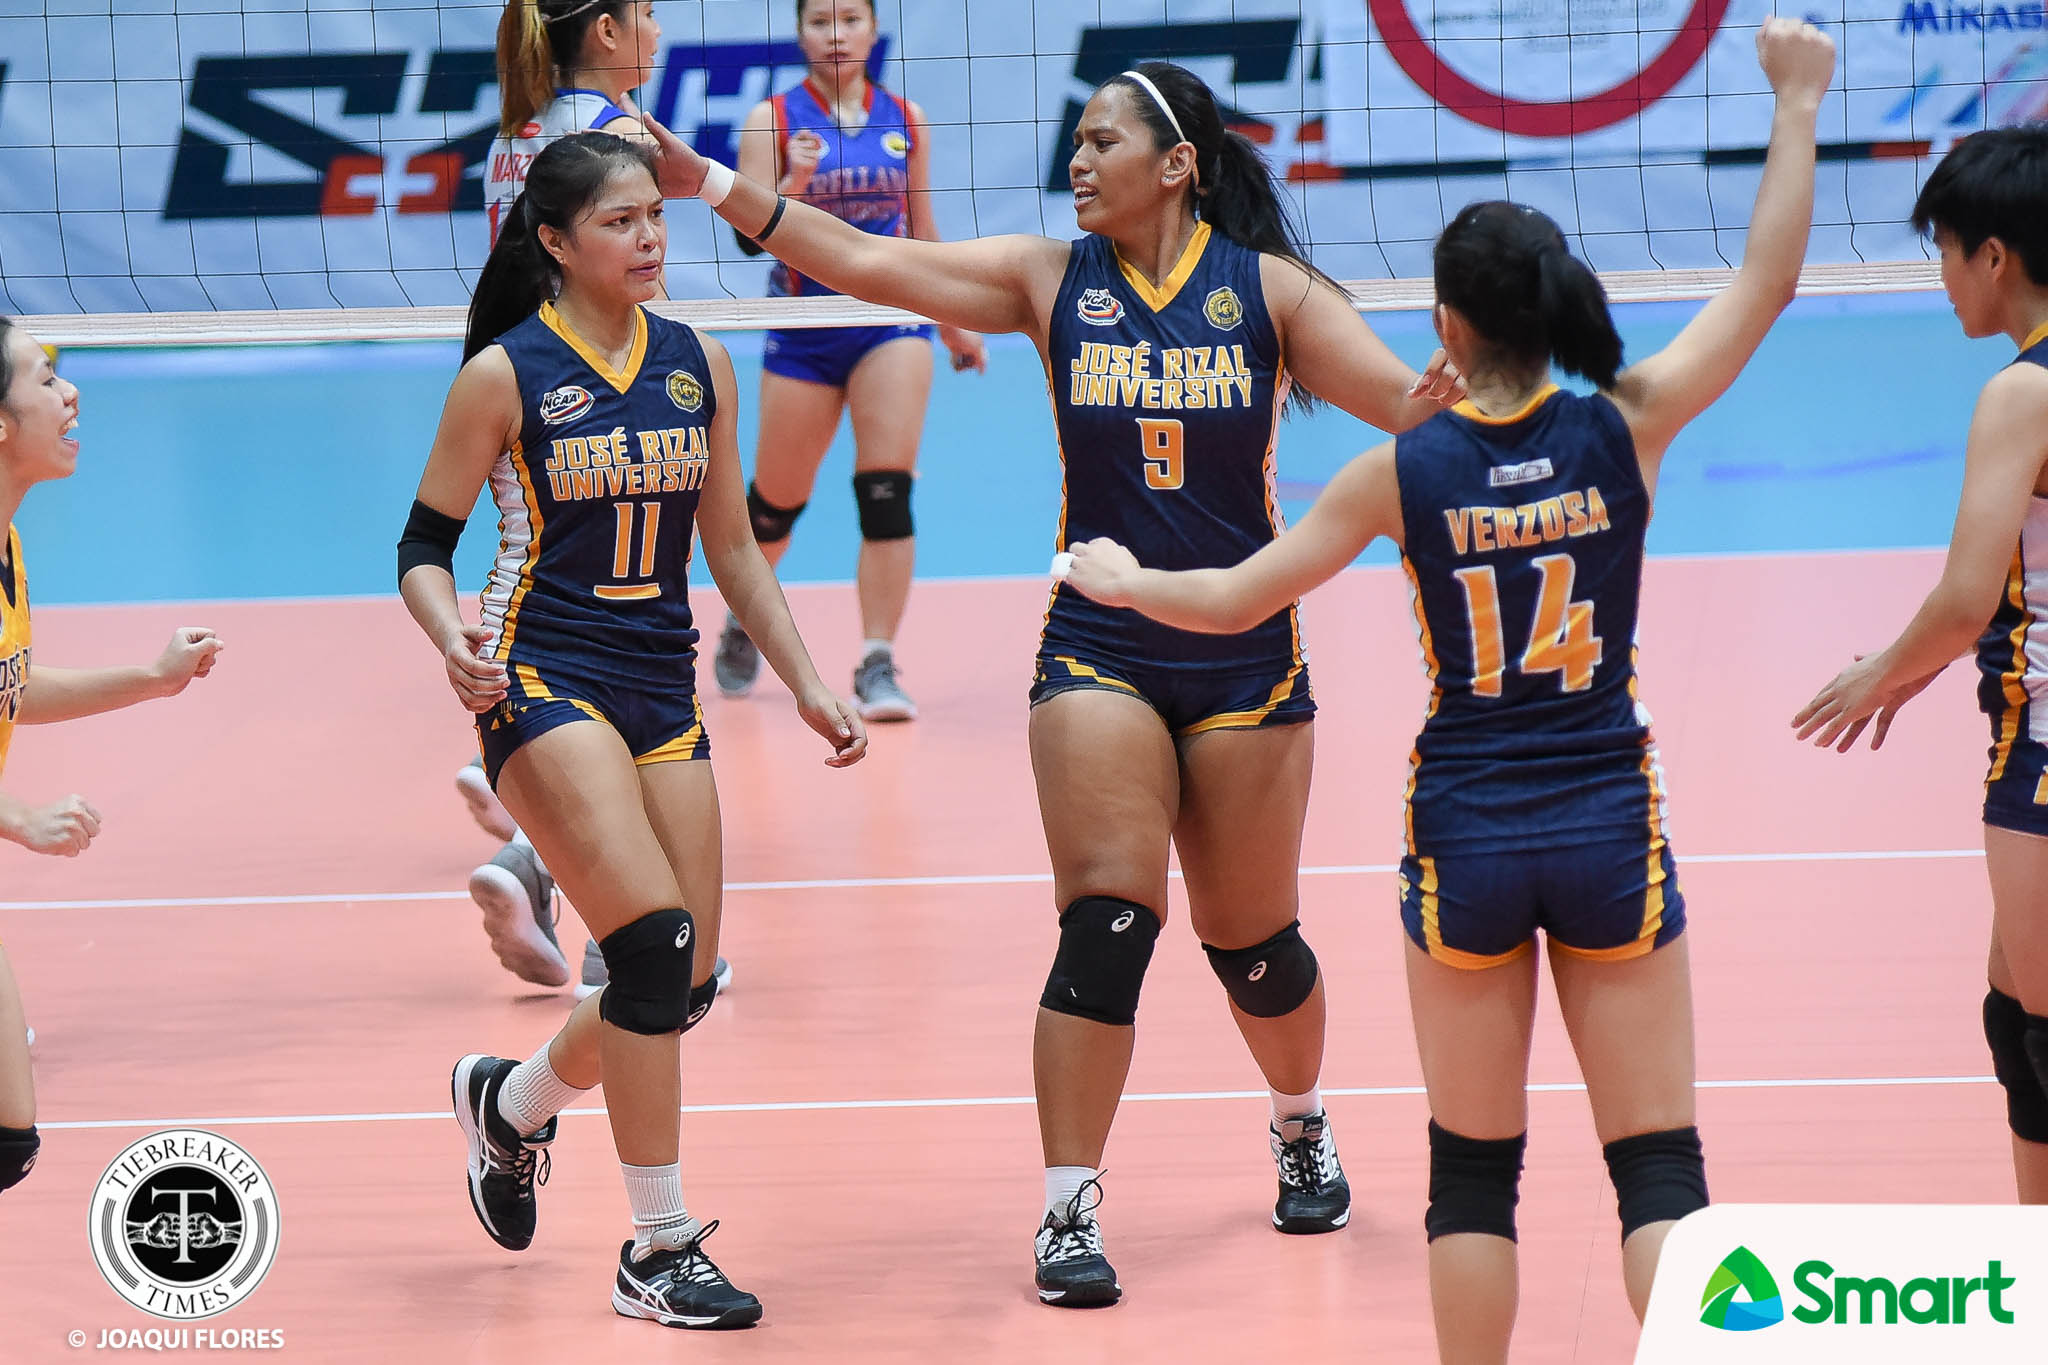 Tiebreaker Times Shola Alvarez leaves lasting mark on JRU, sets sight on beach volley JRU NCAA News Volleyball  Shola Alvarez NCAA Season 93 Women's Volleyball NCAA Season 93 Mia Tioseco JRU Women's Volleyball